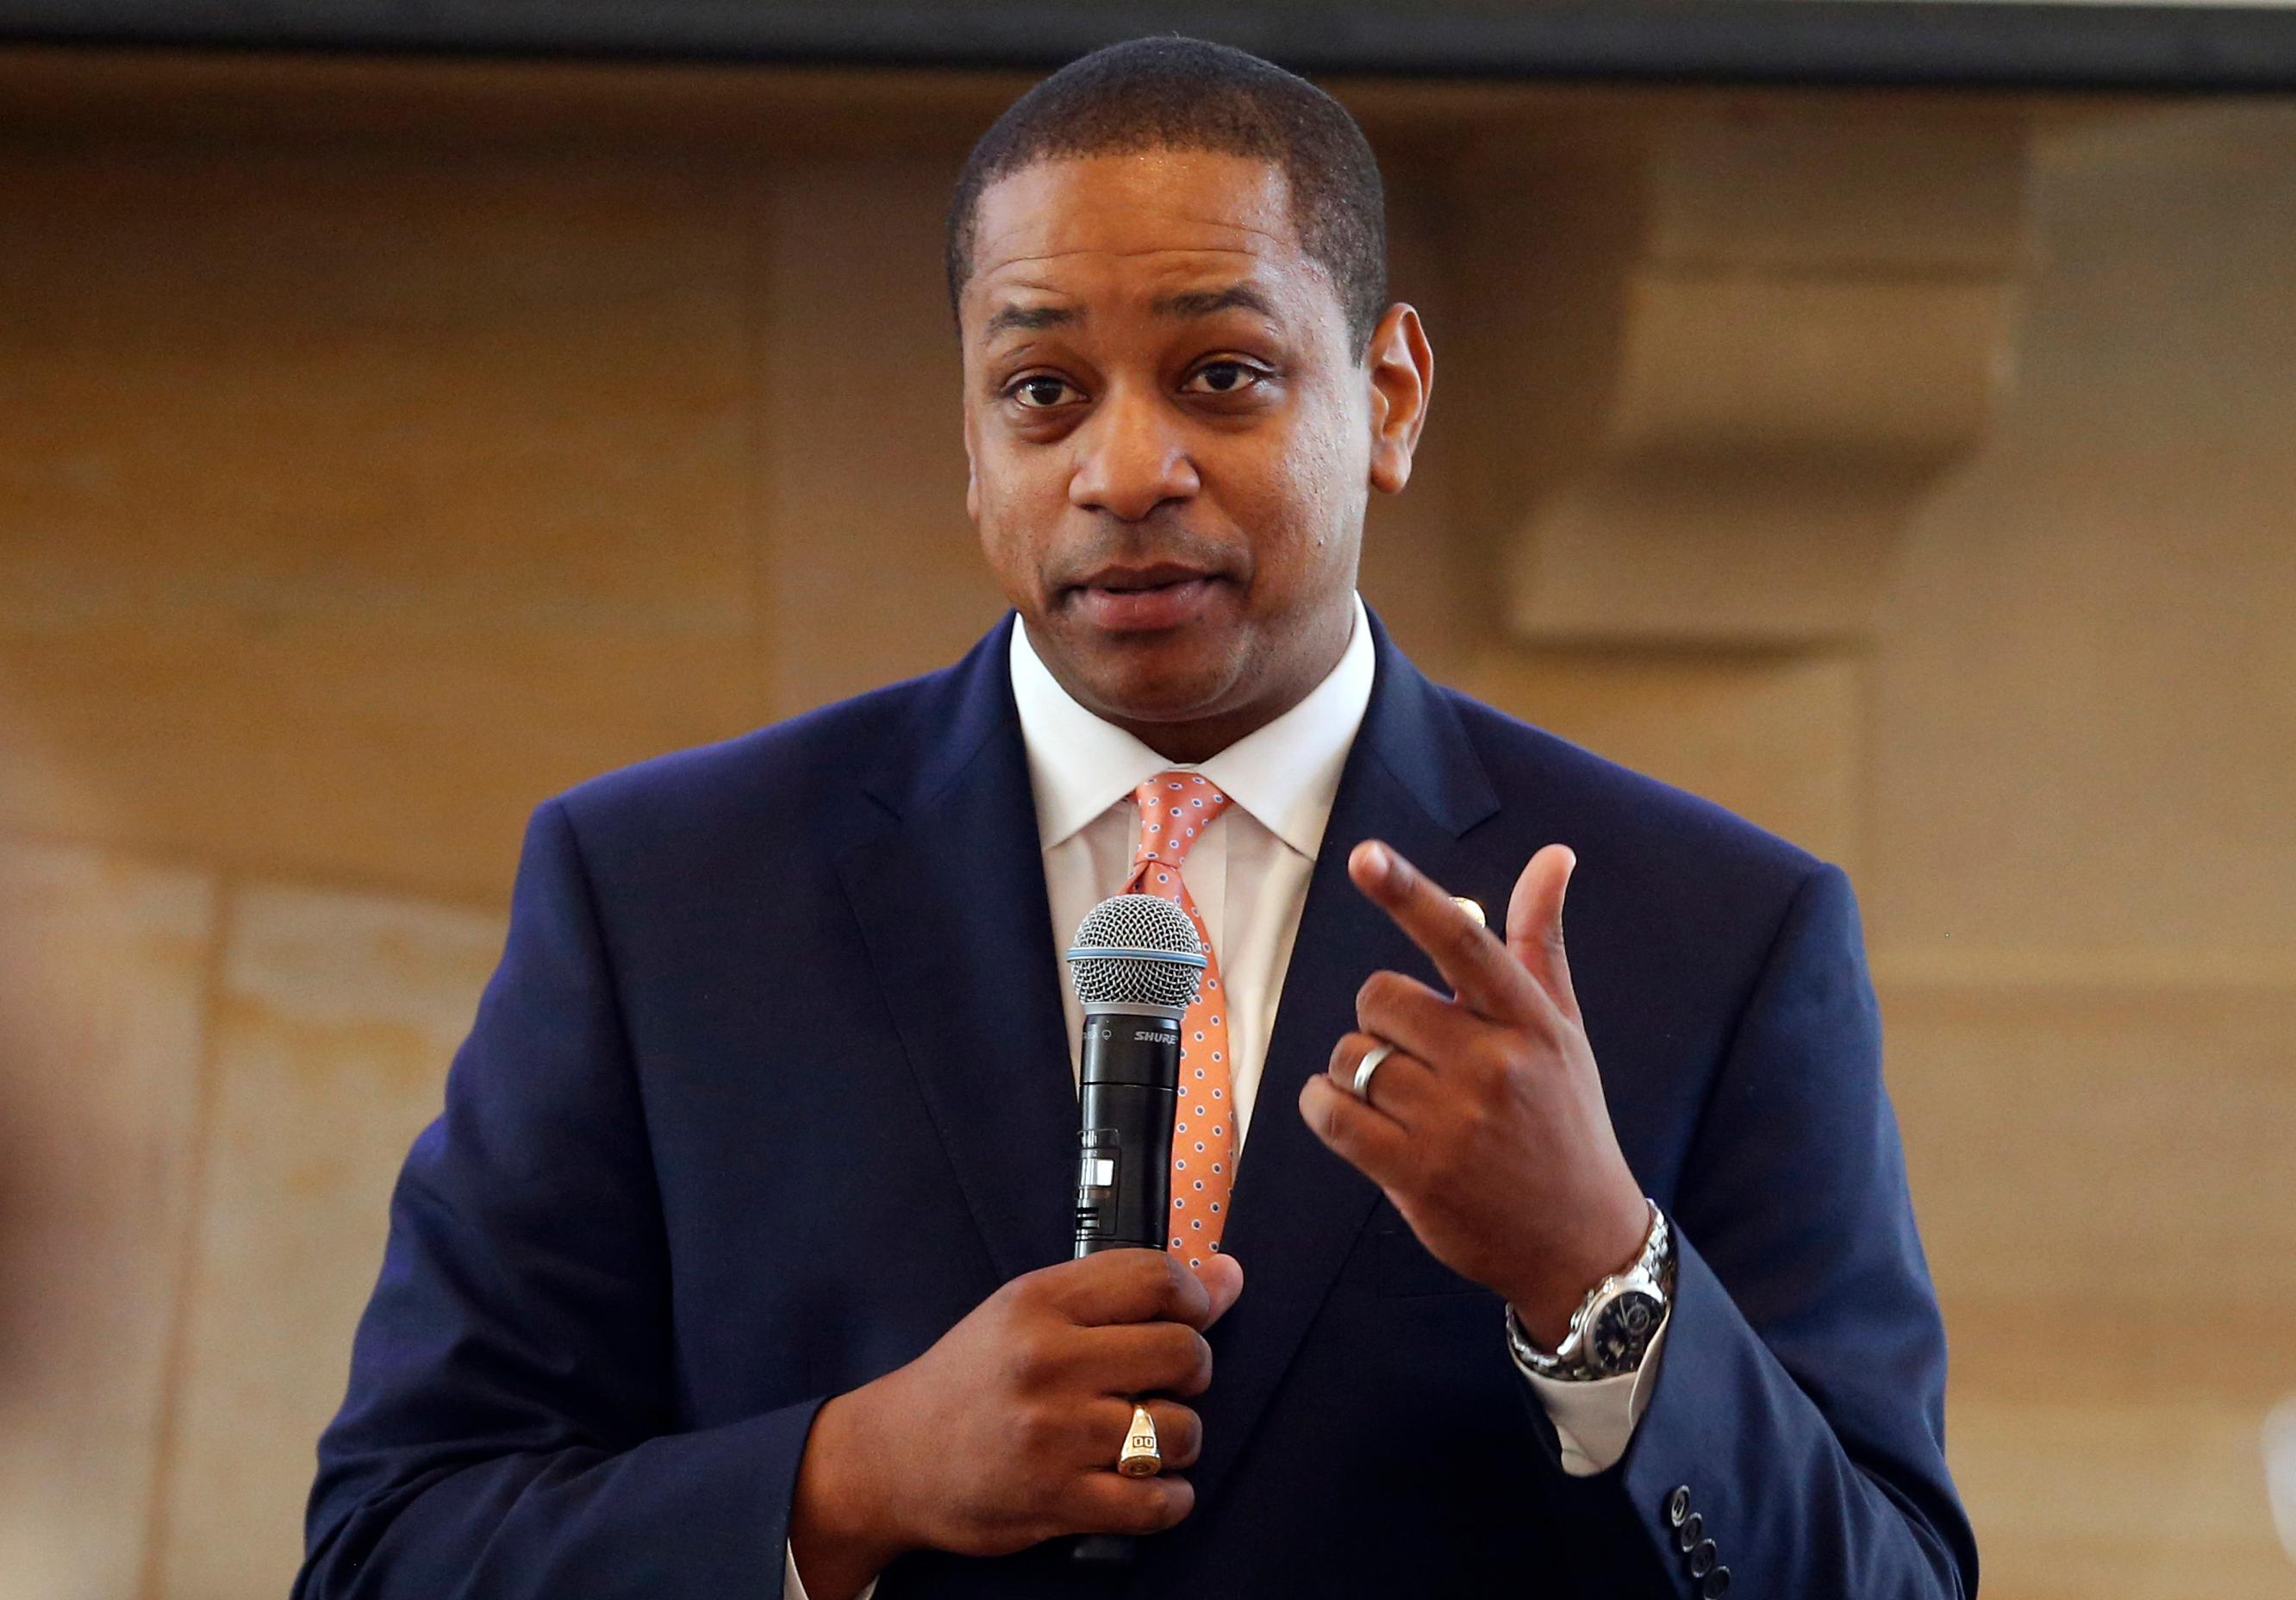 FILE- In this Sept. 25, 2018, file photo, Virginia Lt. Gov. Justin Fairfax gestures during remarks before a meeting of the Campaign to reduce evictions at a church meeting room in Richmond, Va. (AP Photo/Steve Helber)